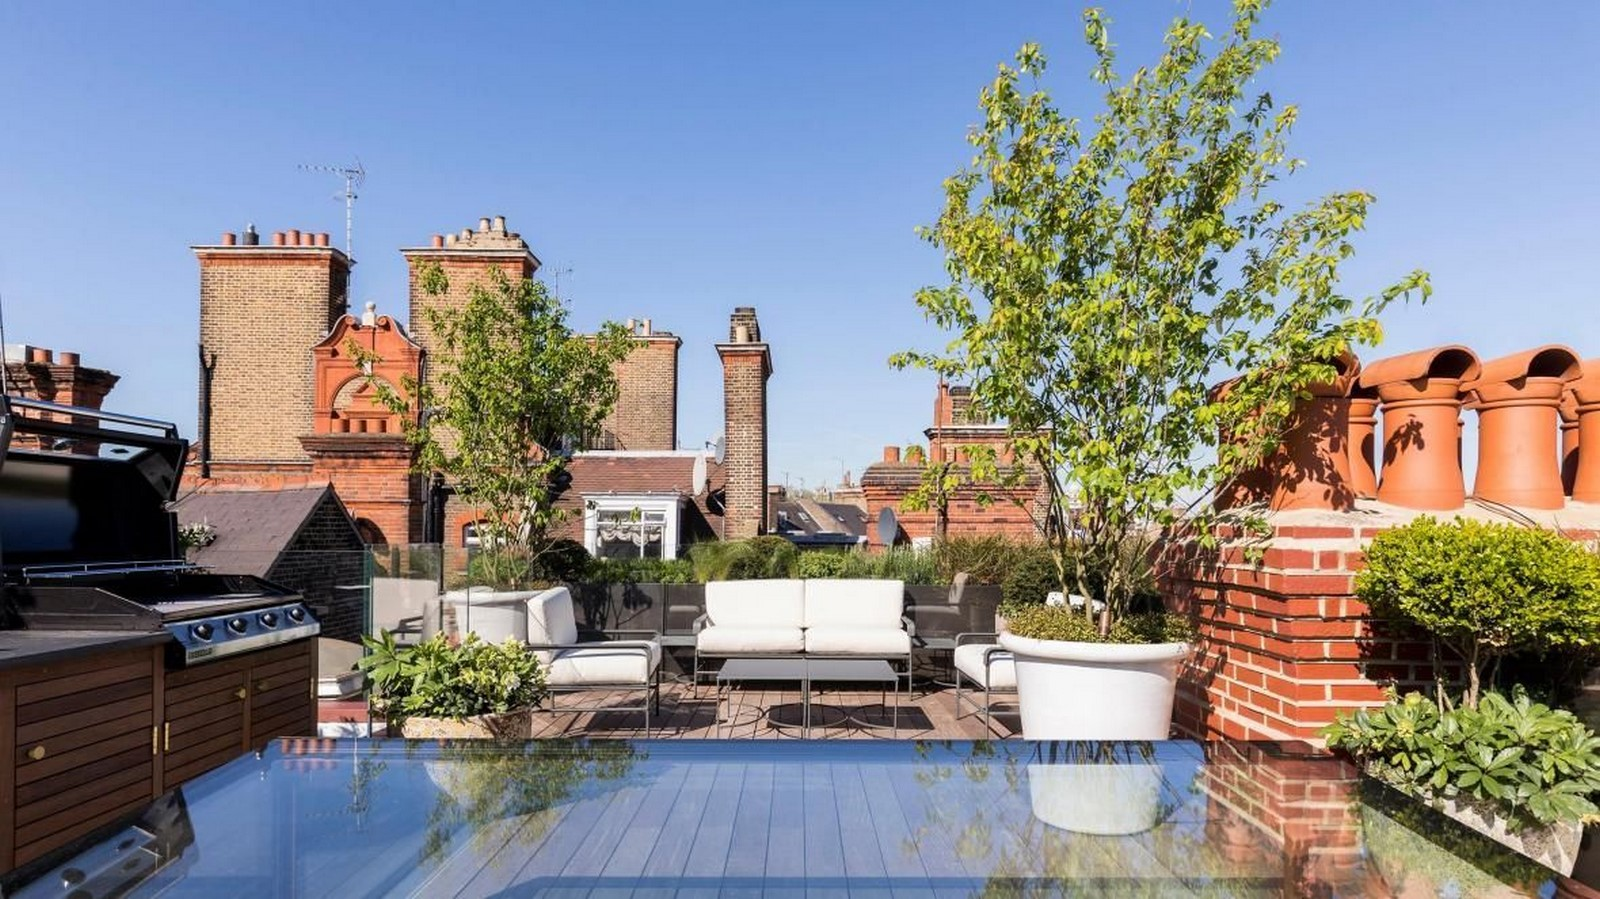 10 things to remember when designing rooftop gardens - Sheet11